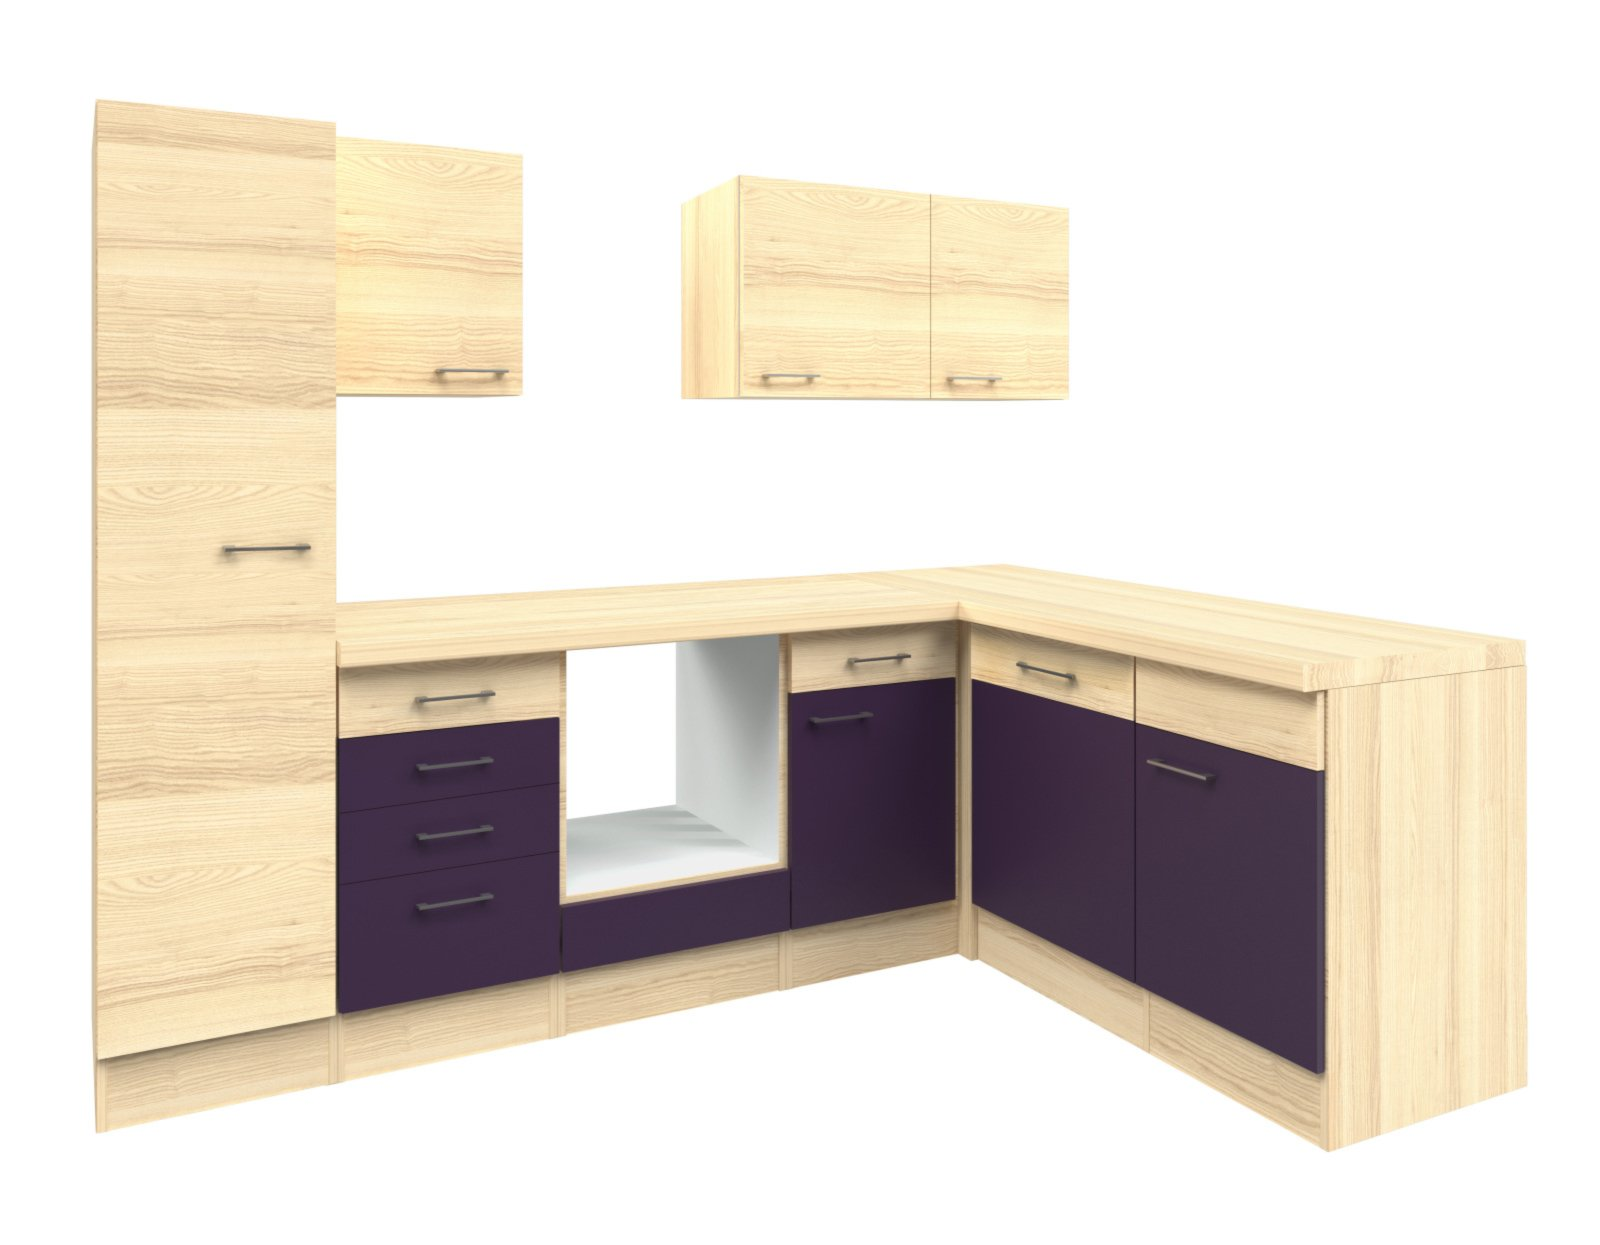 winkelkchen billig free awesome finest good combos with. Black Bedroom Furniture Sets. Home Design Ideas